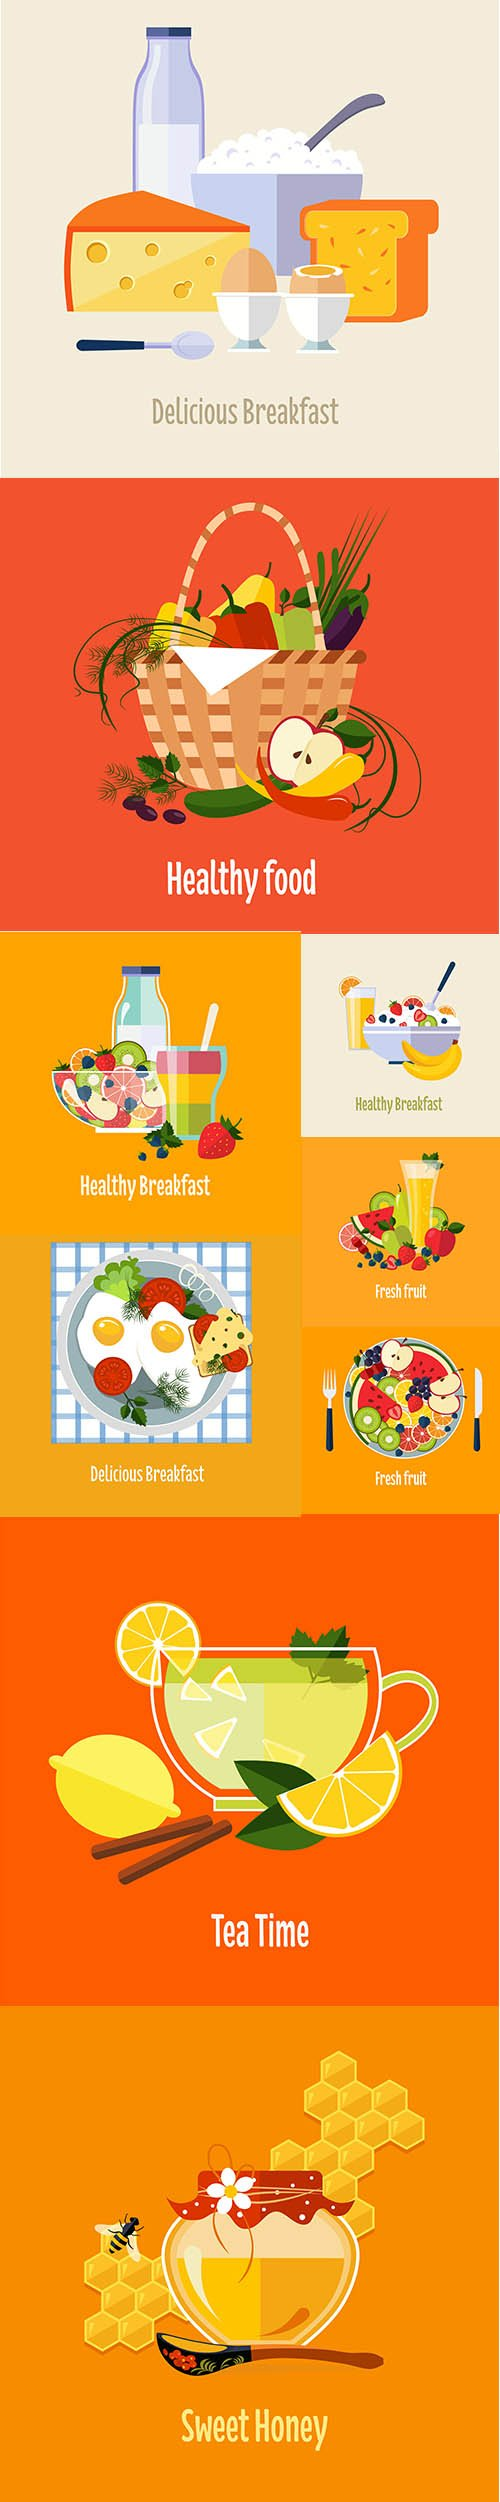 Good Food Vector Illustration Collection